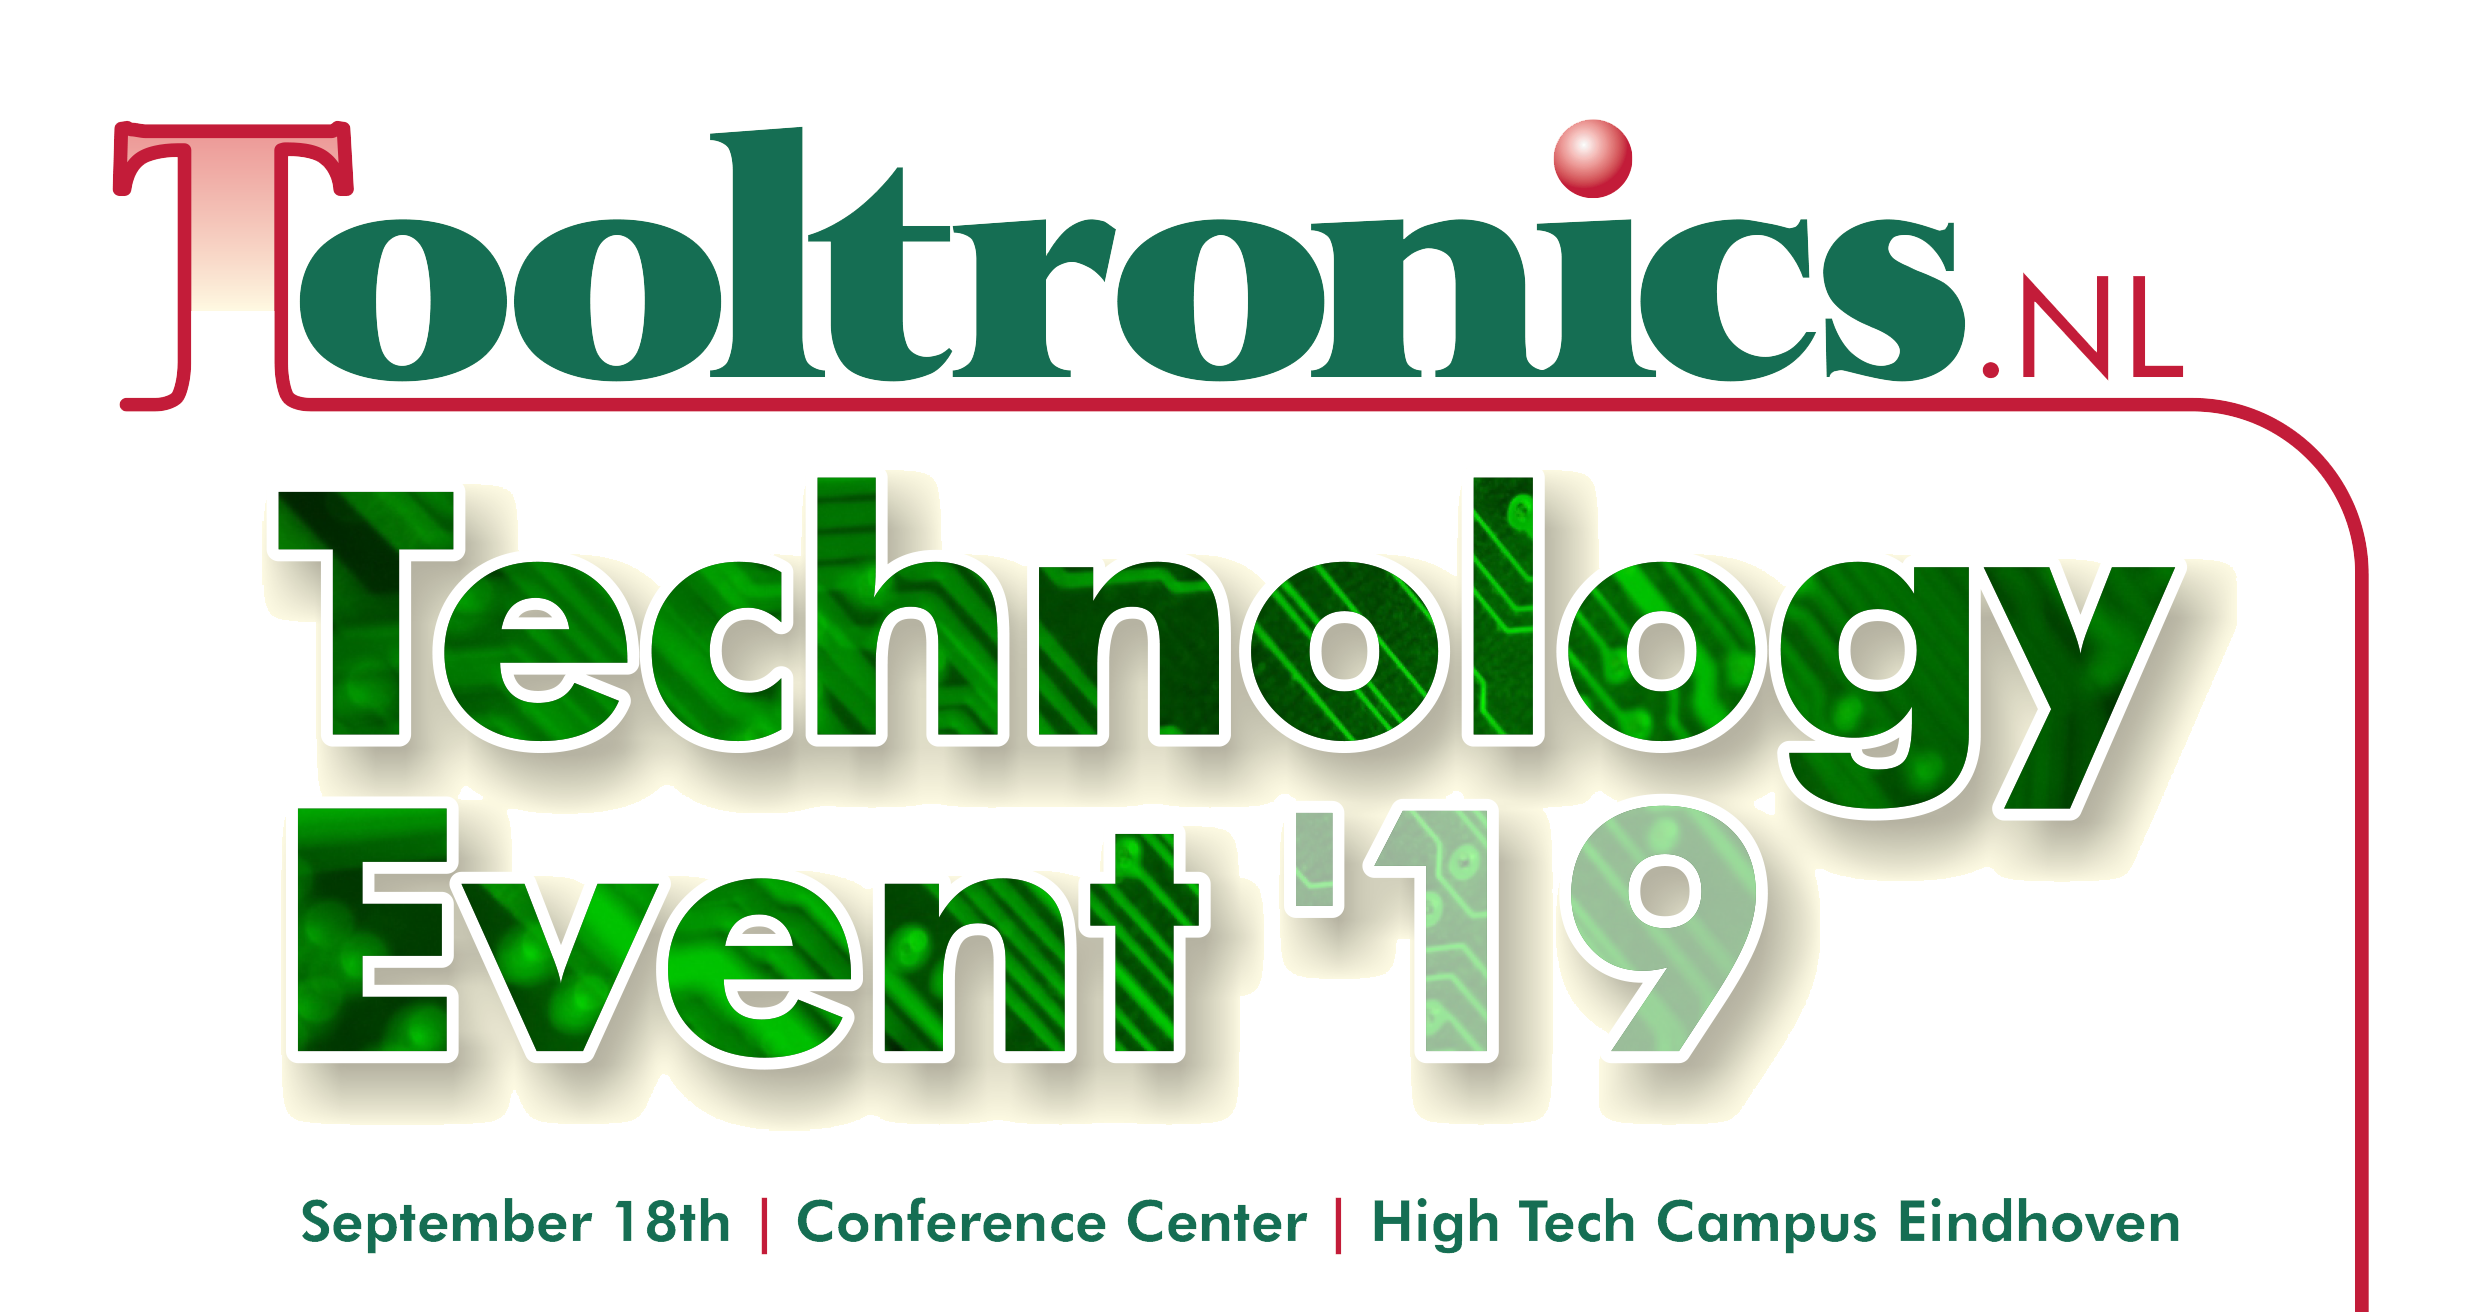 technology event 2019